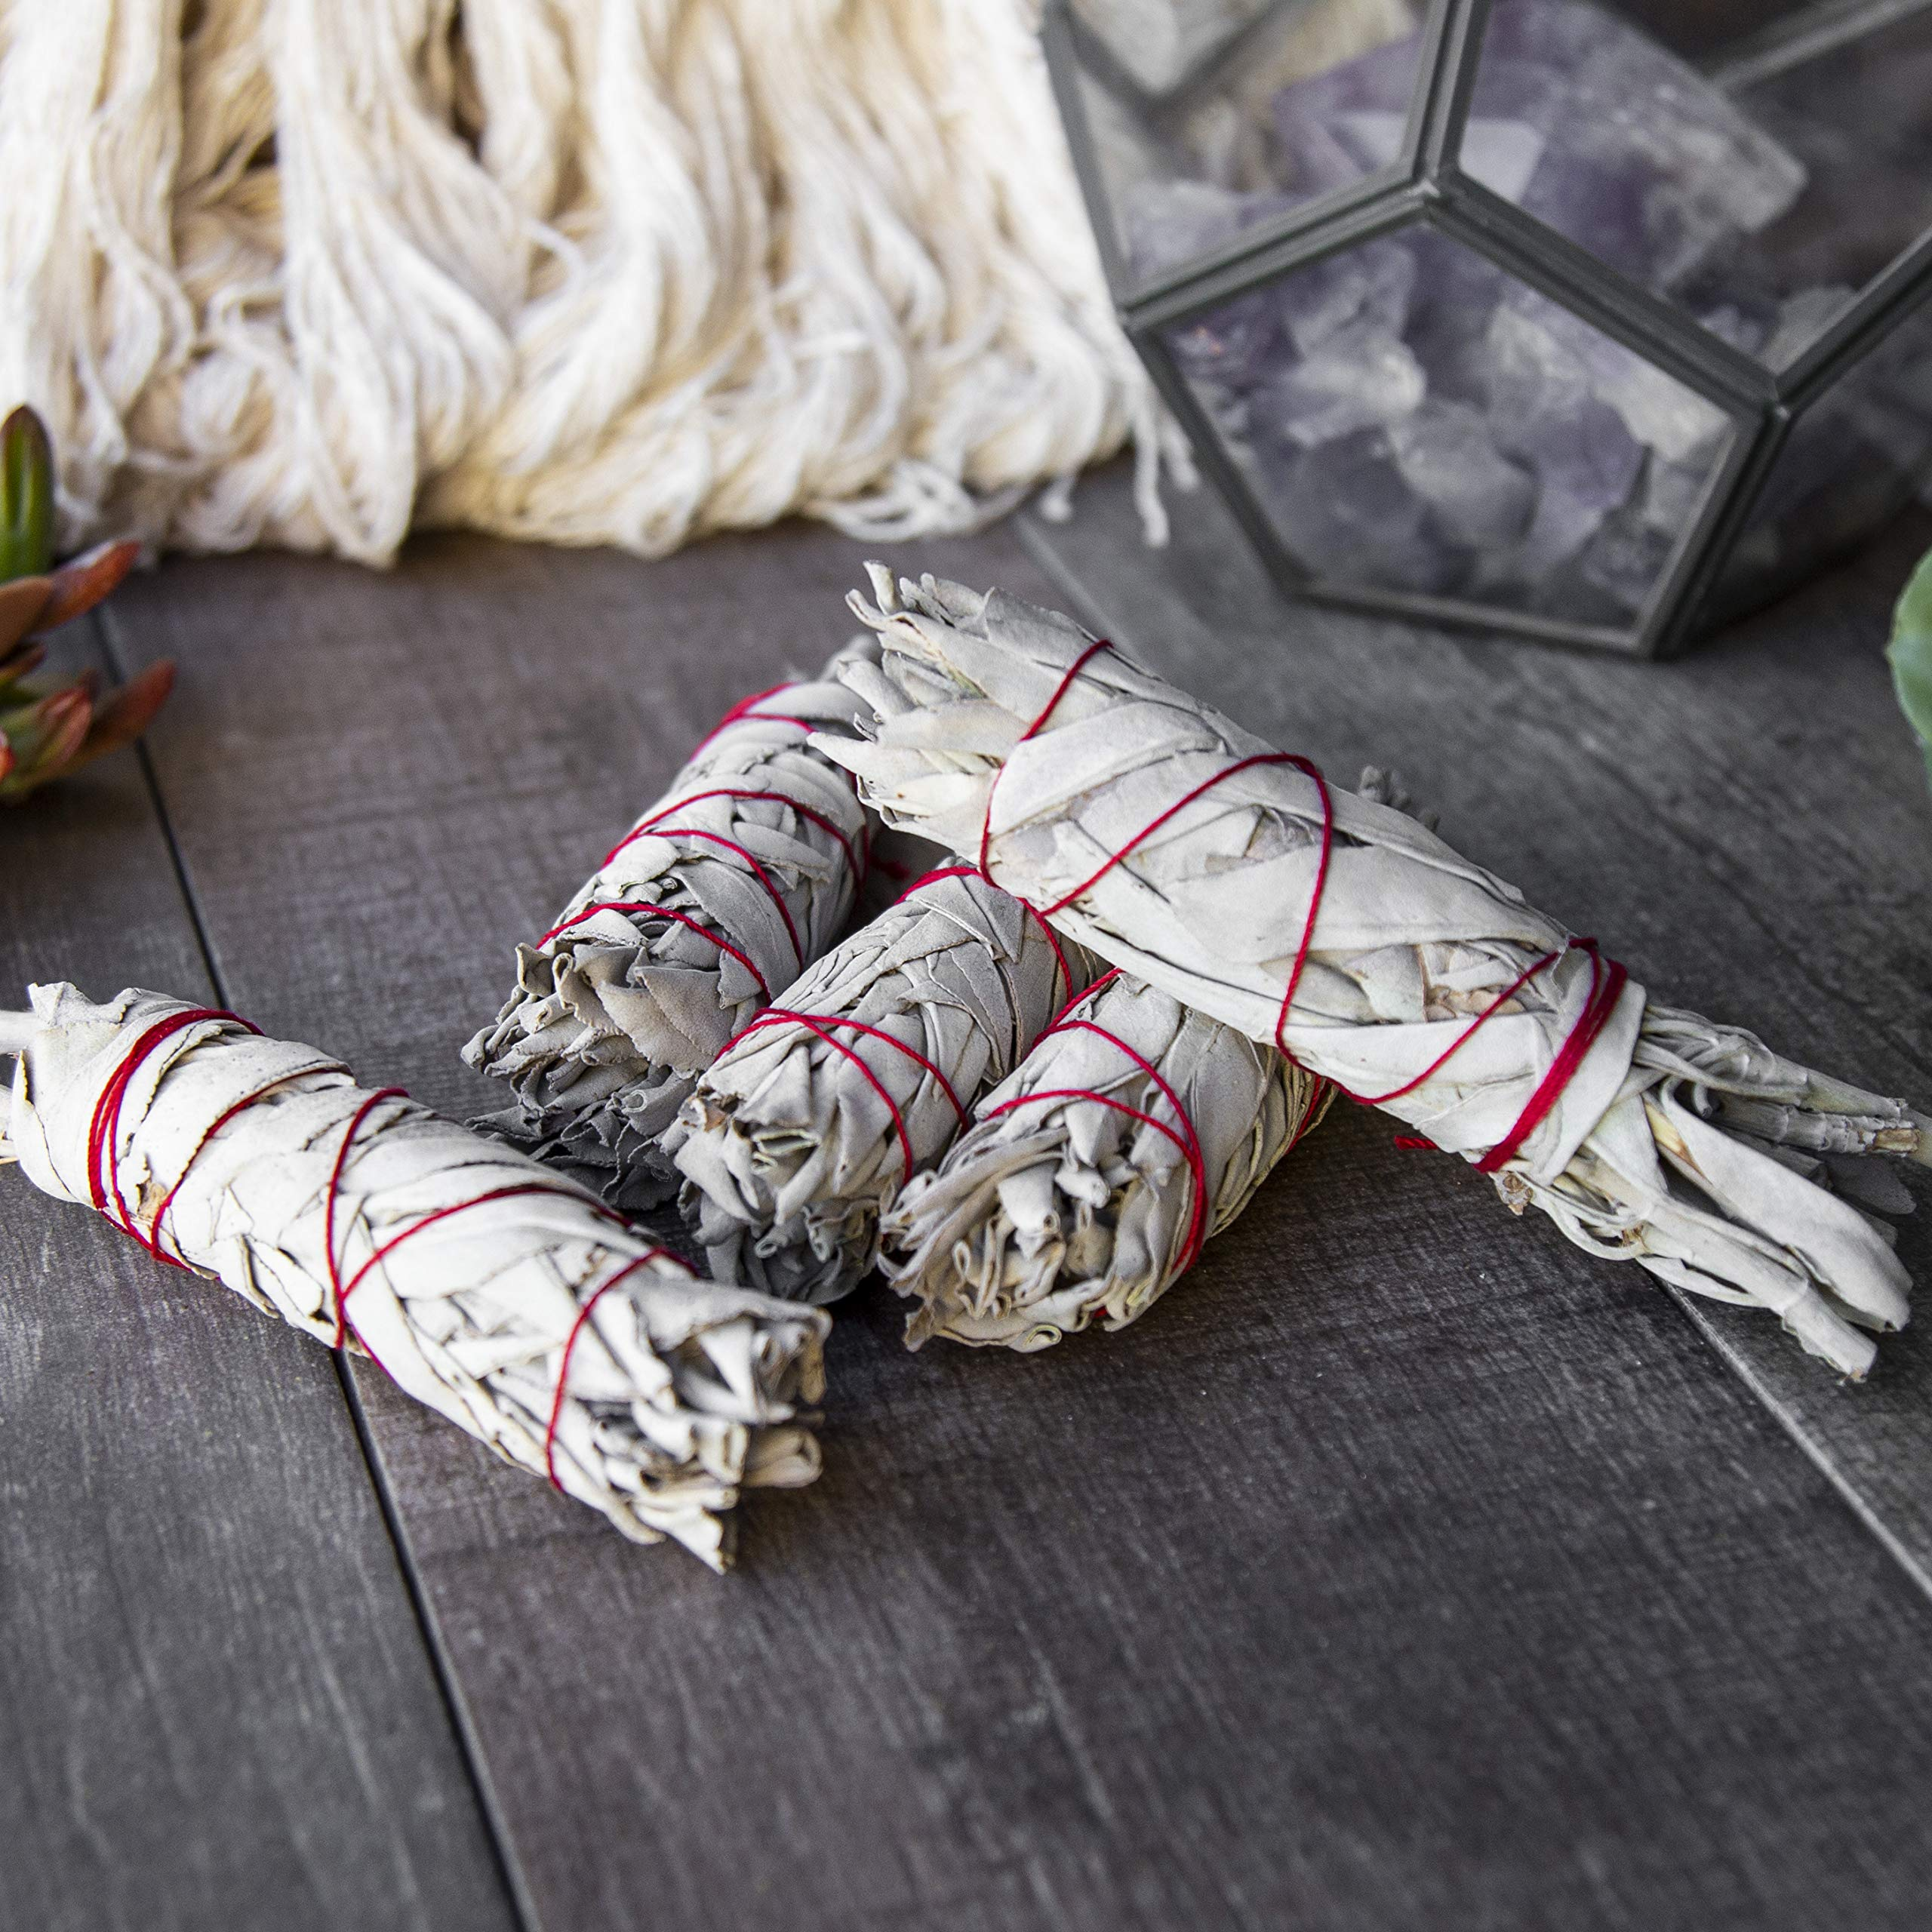 Beverly Oaks California White Sage 4'' Smudge Stick, Perfect for Smudging, Meditation, Protection and Incense, 20 Pack by Beverly Oaks (Image #5)